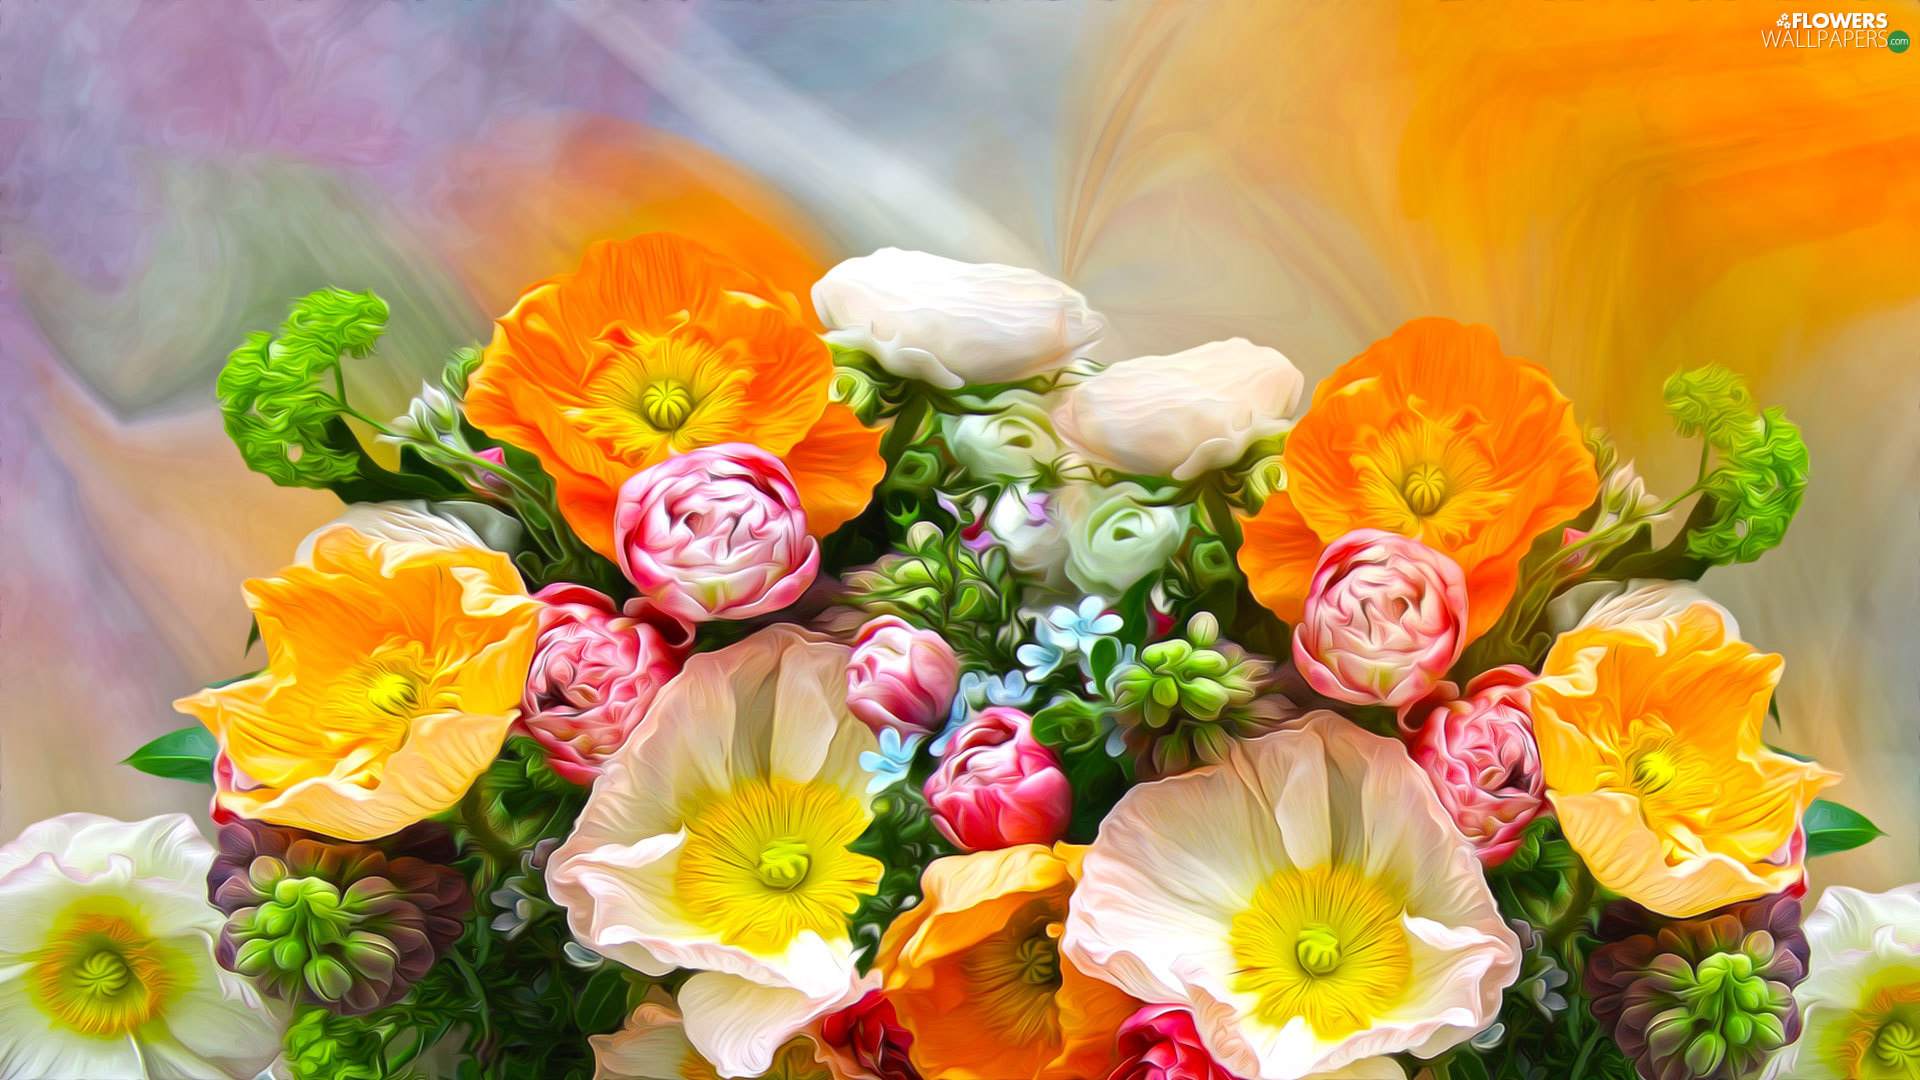 Flowers, papavers, graphics, bouquet